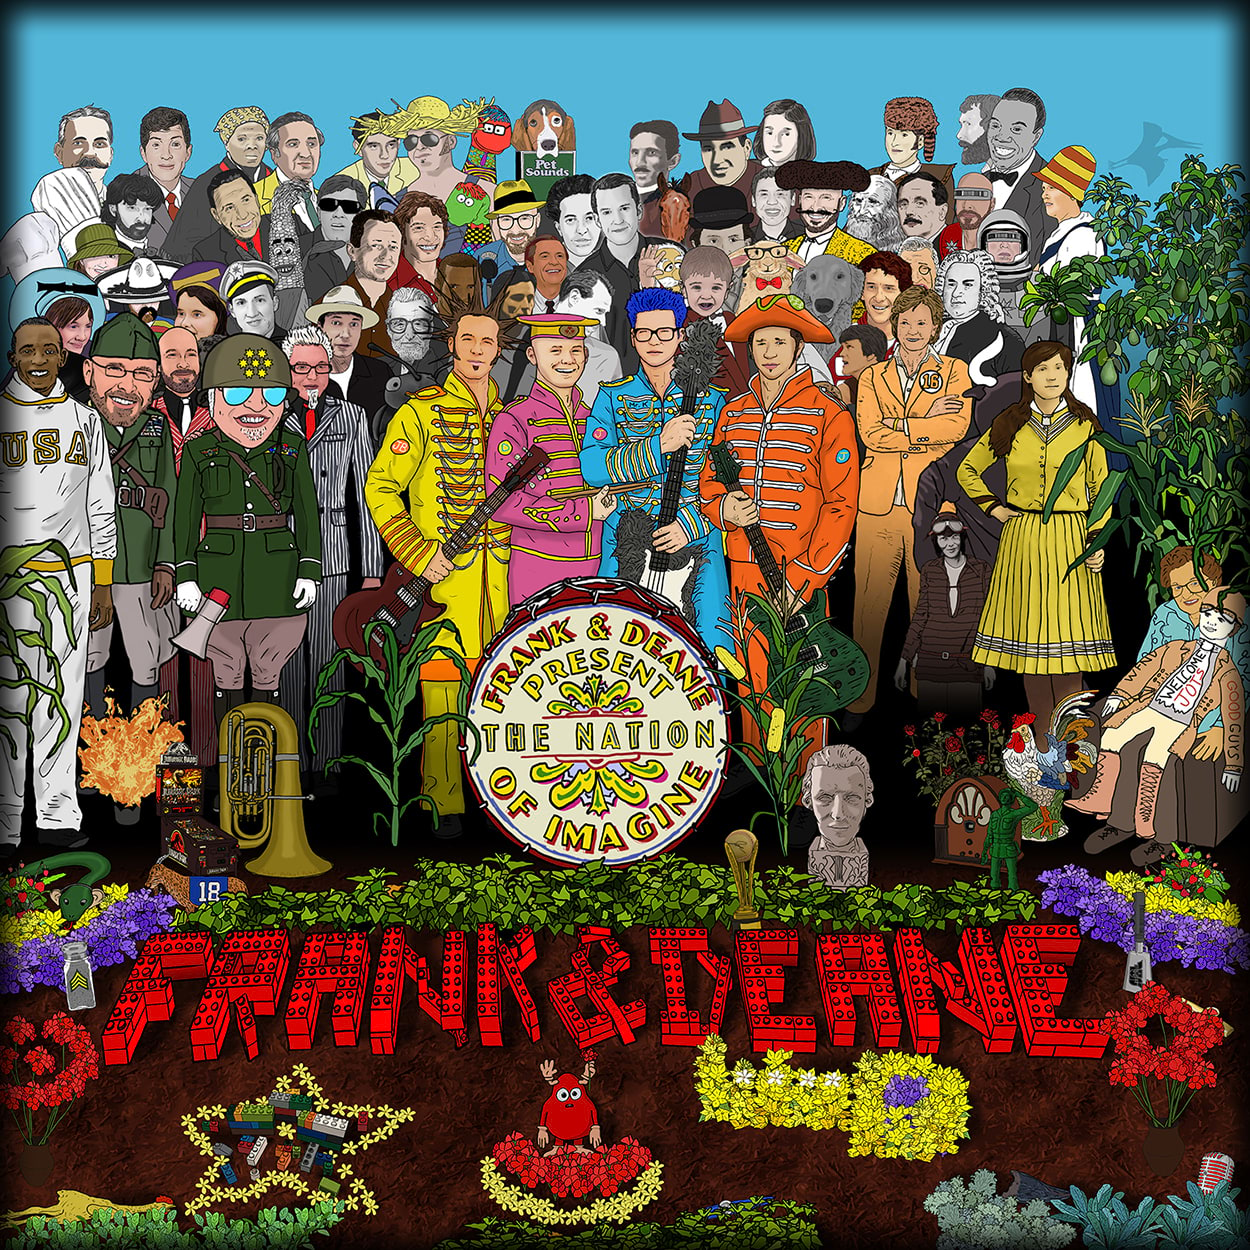 04-frank-and-deane-the-nation-of-imagine-album-cover-childrens-music.jpg